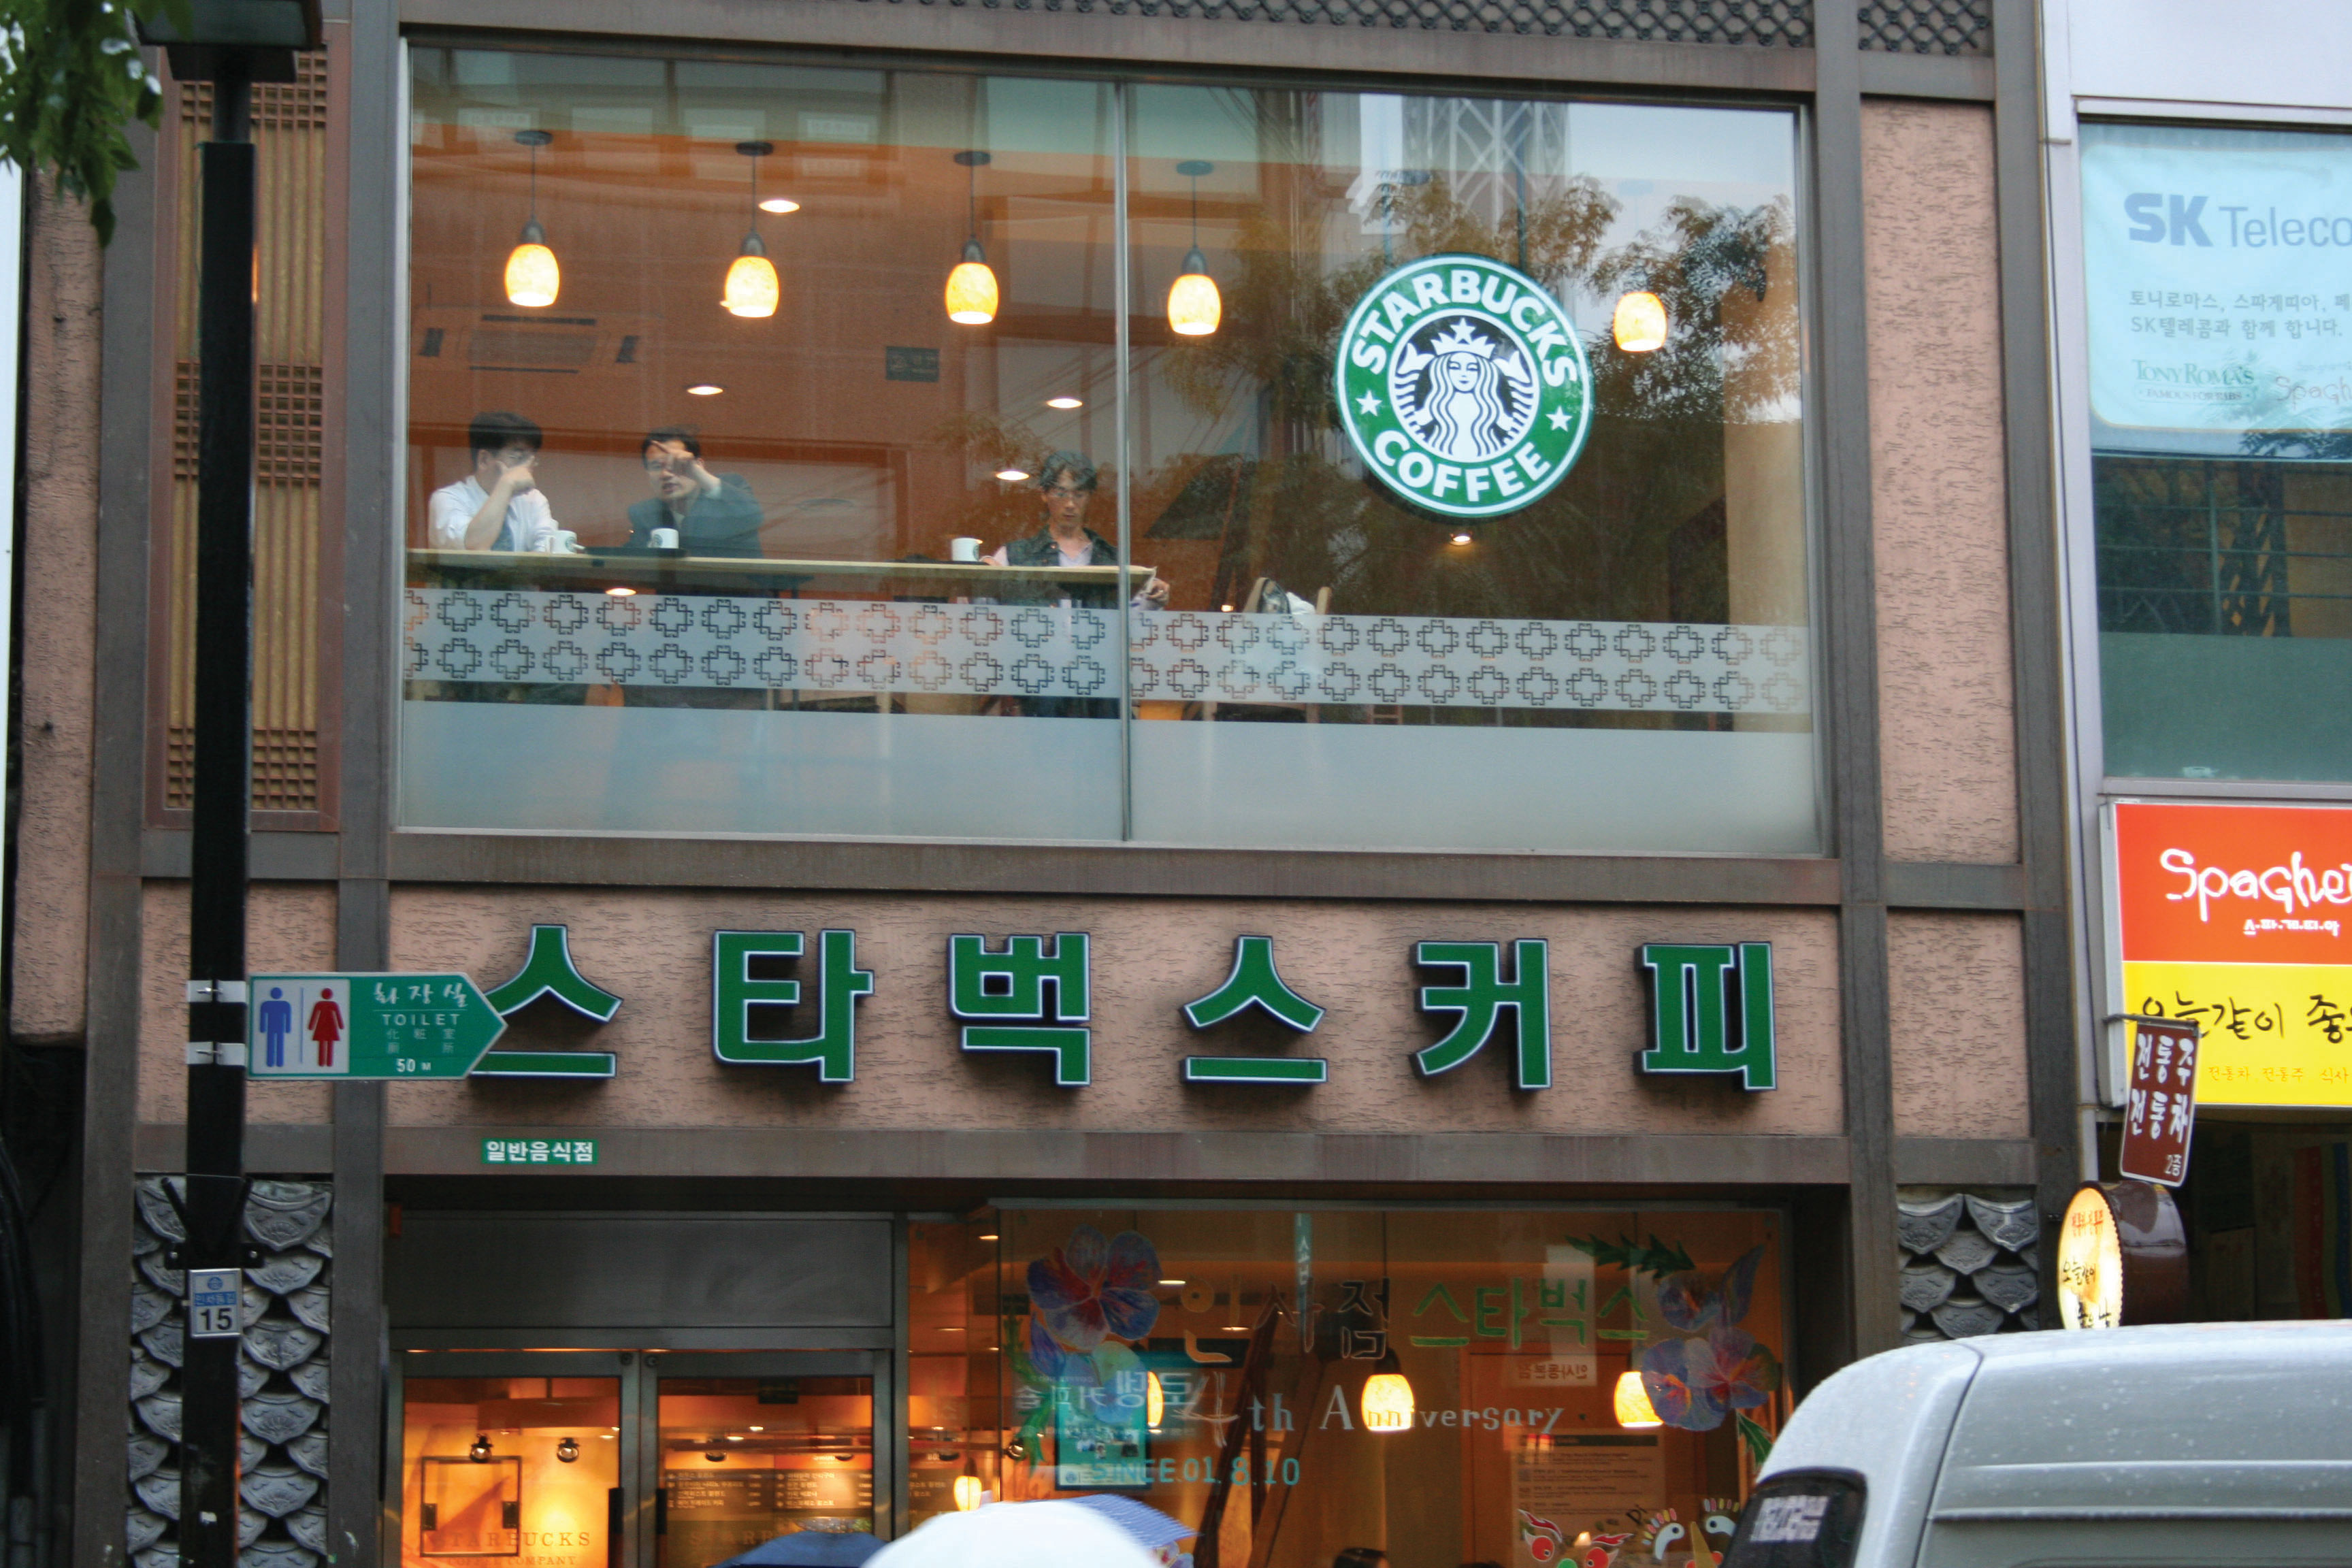 global staffing strategies and starbucks Starbucks' global strategy and strategies at starbucks influenced by the changes in represents starbucks' attempt at taking a polycentric approach to staffing.